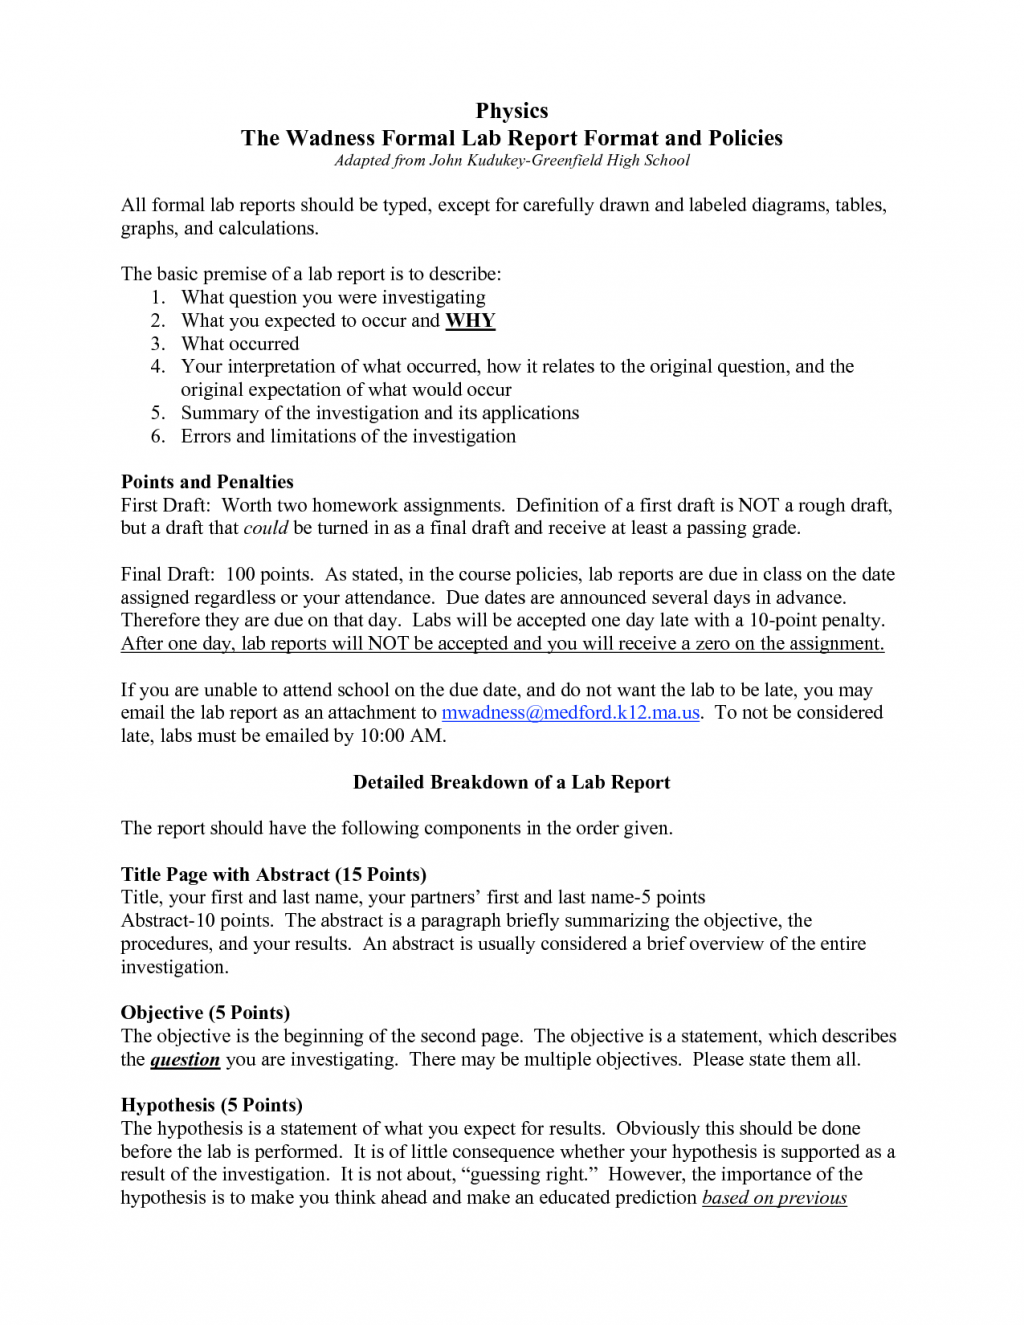 formal lab report template in scientific data biological 7 formal lab report template